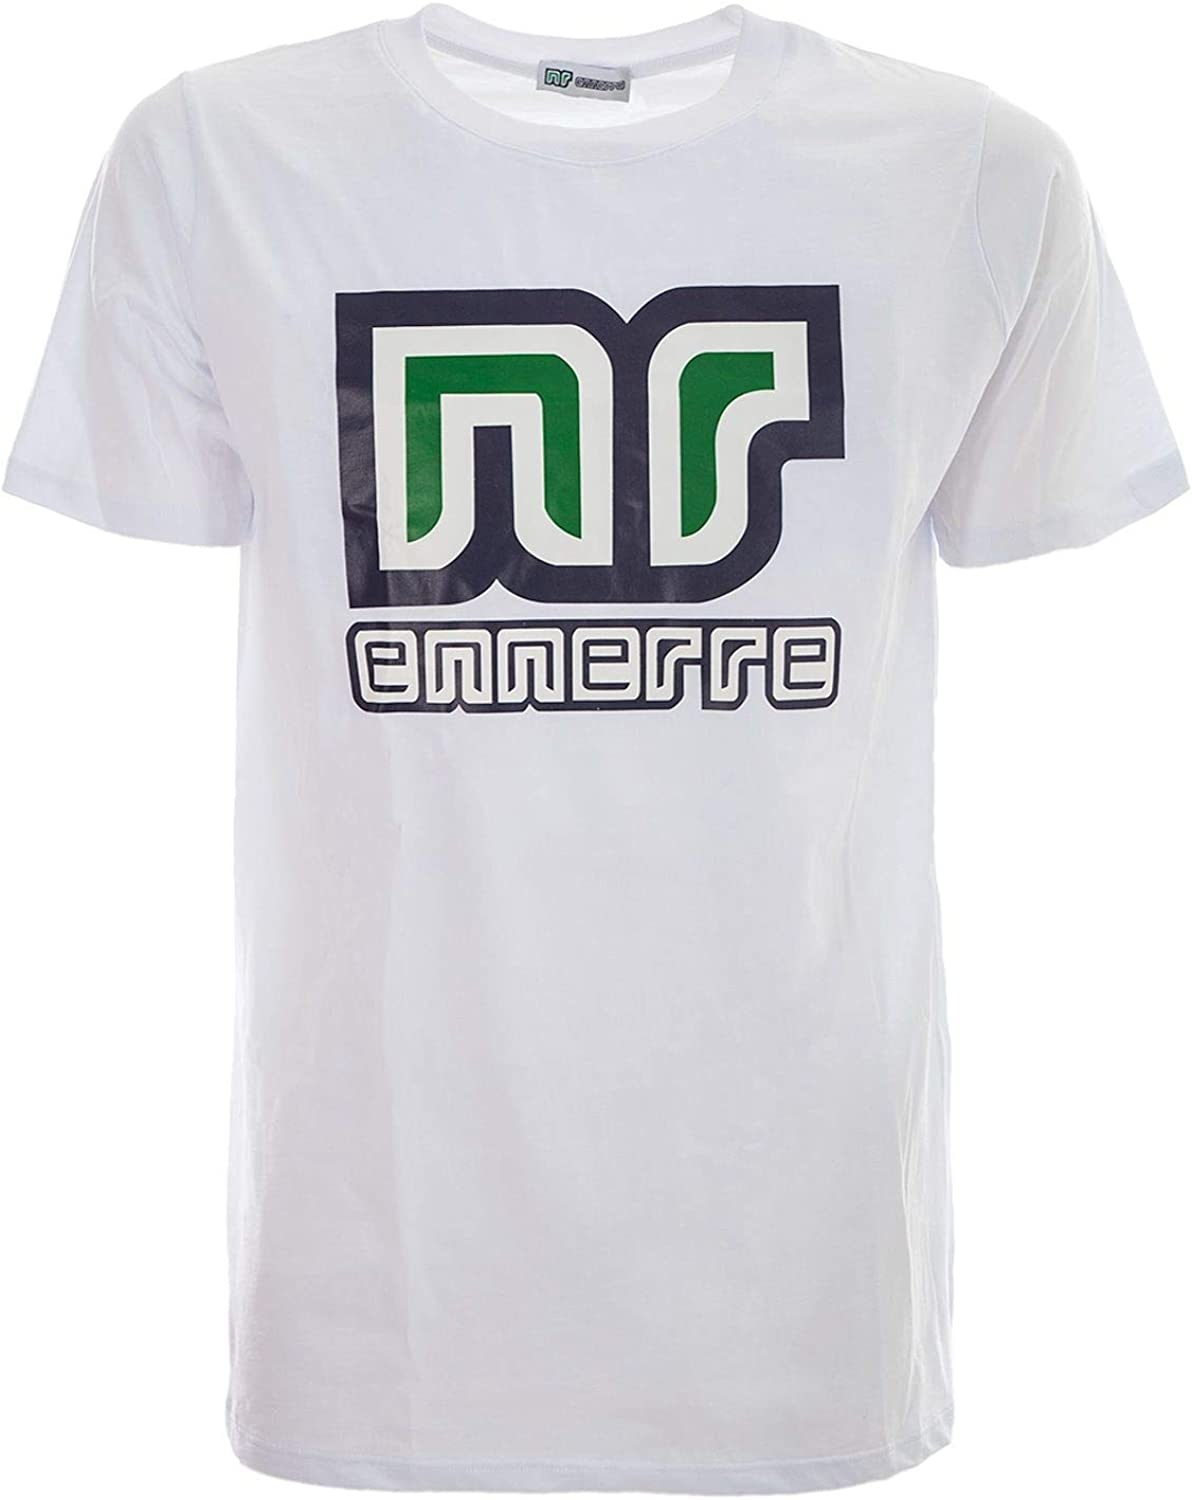 NR ENNERRE BY NICOLA RACCUGLIA Men's NRS15WHITE White Cotton TShirt